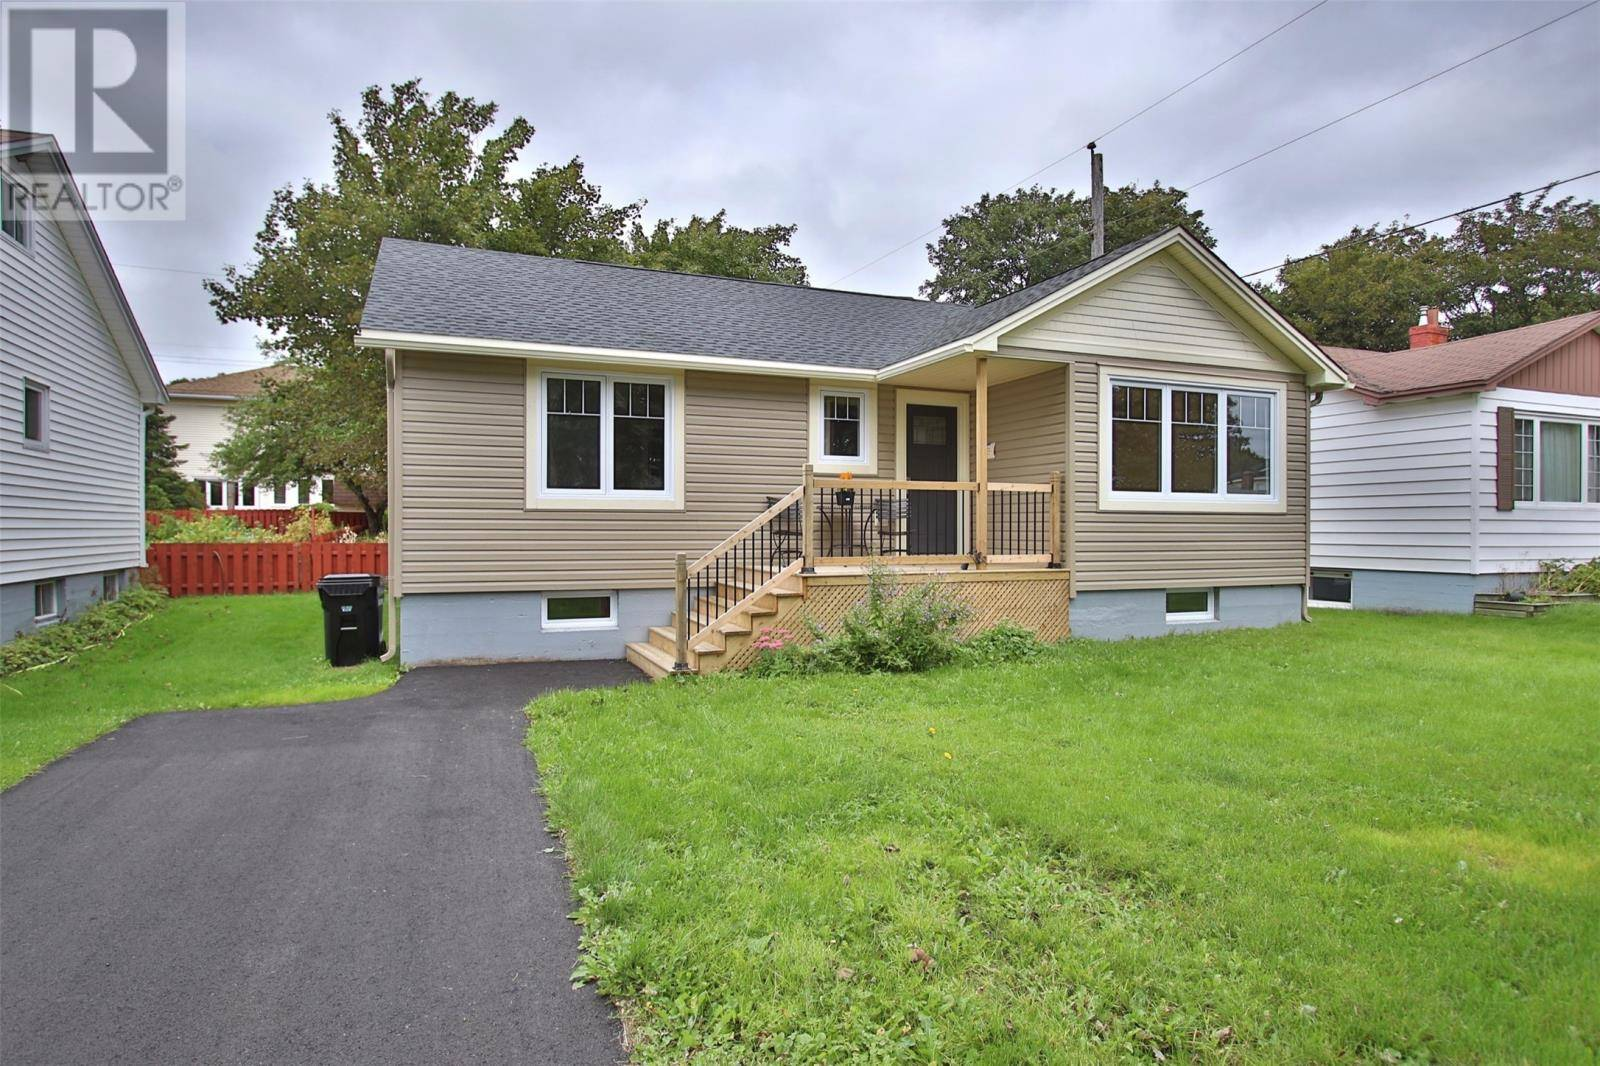 House for sale at 14 Downing St St. John's Newfoundland - MLS: 1207754